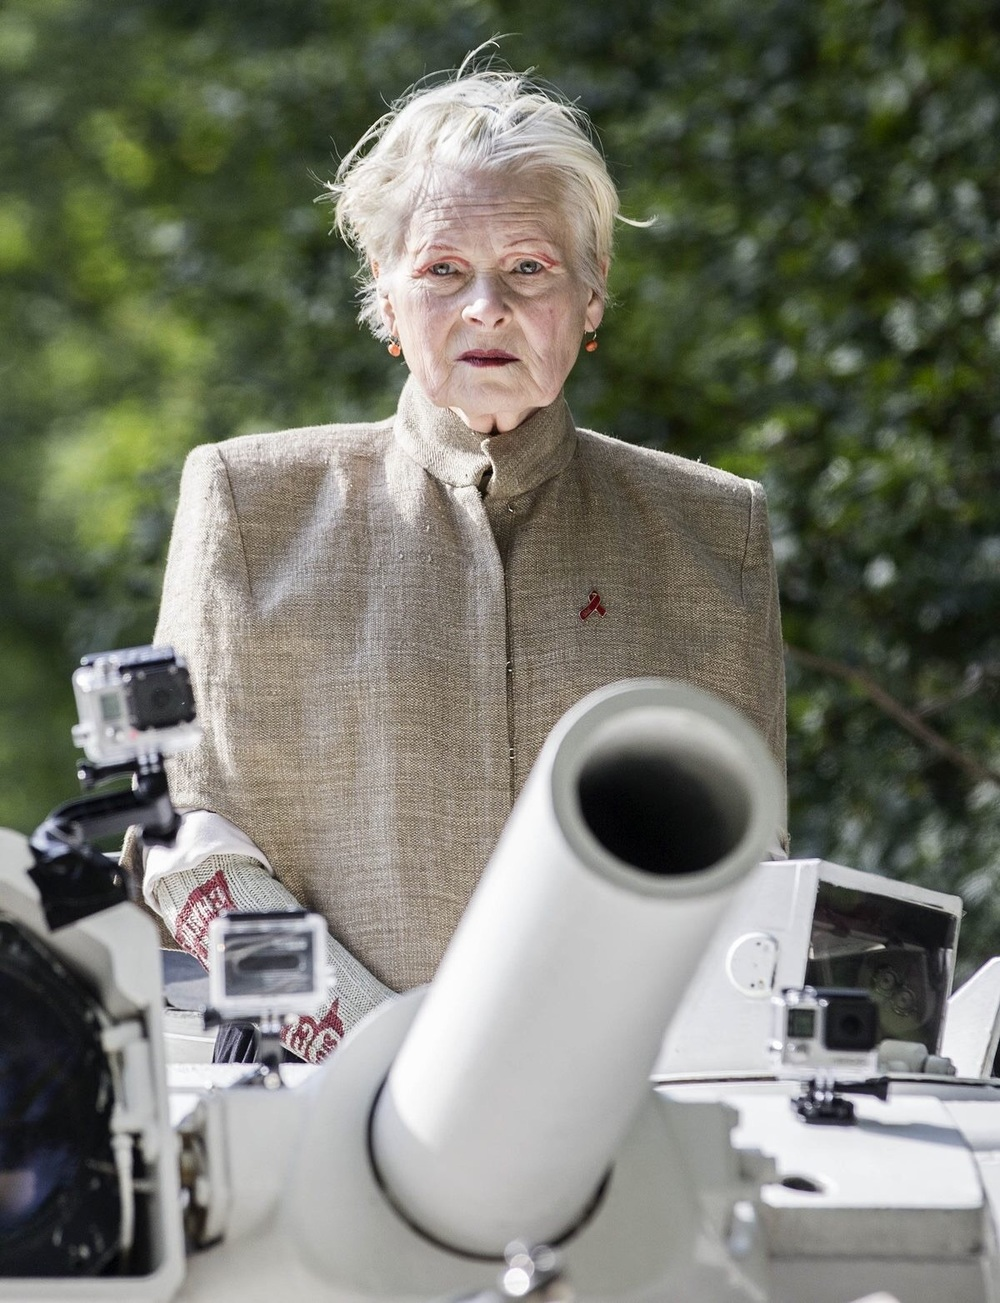 Dame Vivienne Westwood, 74, heading to David Cameron's house, in  a tank, in anti-fracking protest. September 11th, 2015. Photo Leon Neal.